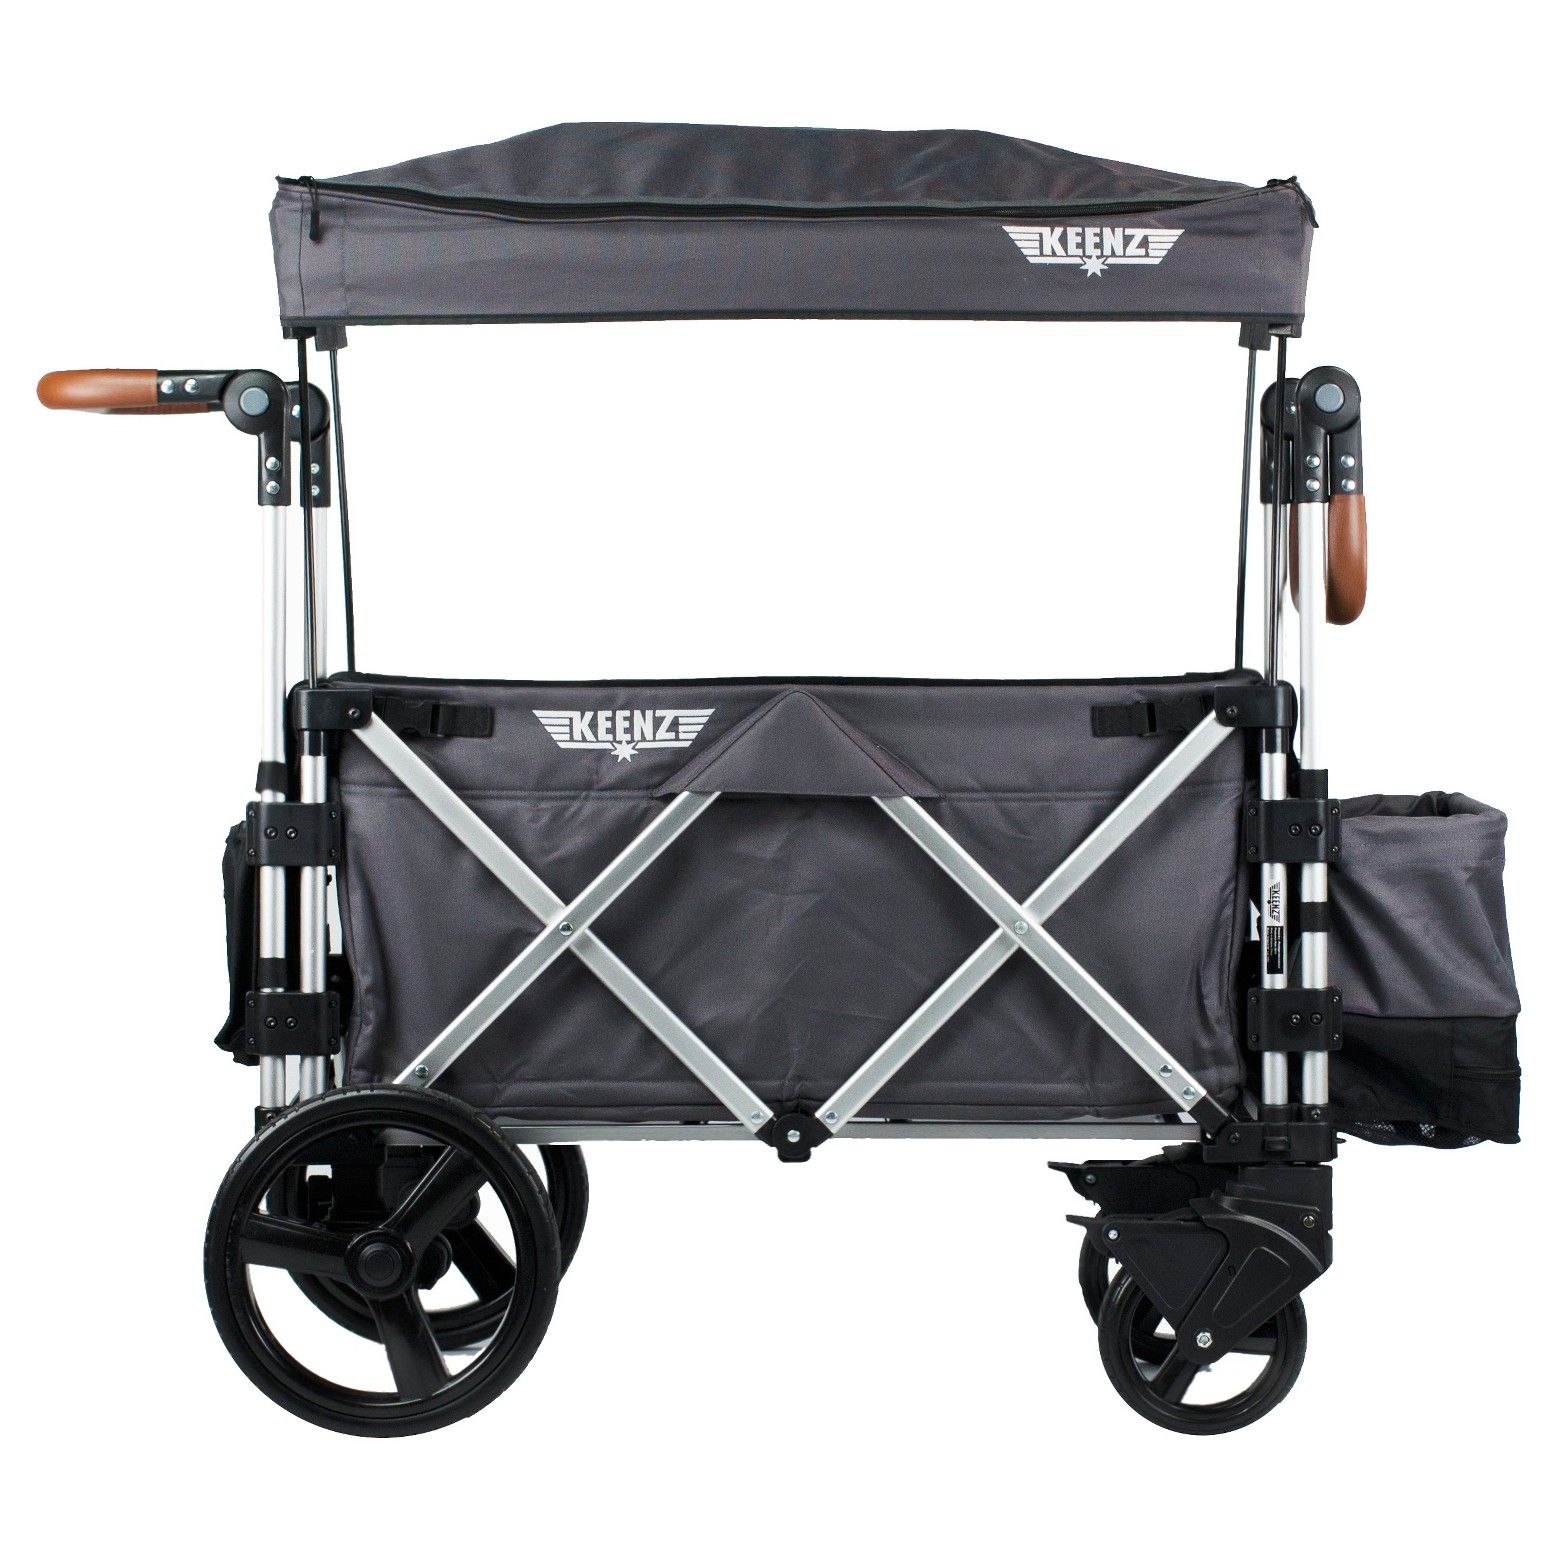 Keenz 7S Double Stroller Wagon Gray Double strollers